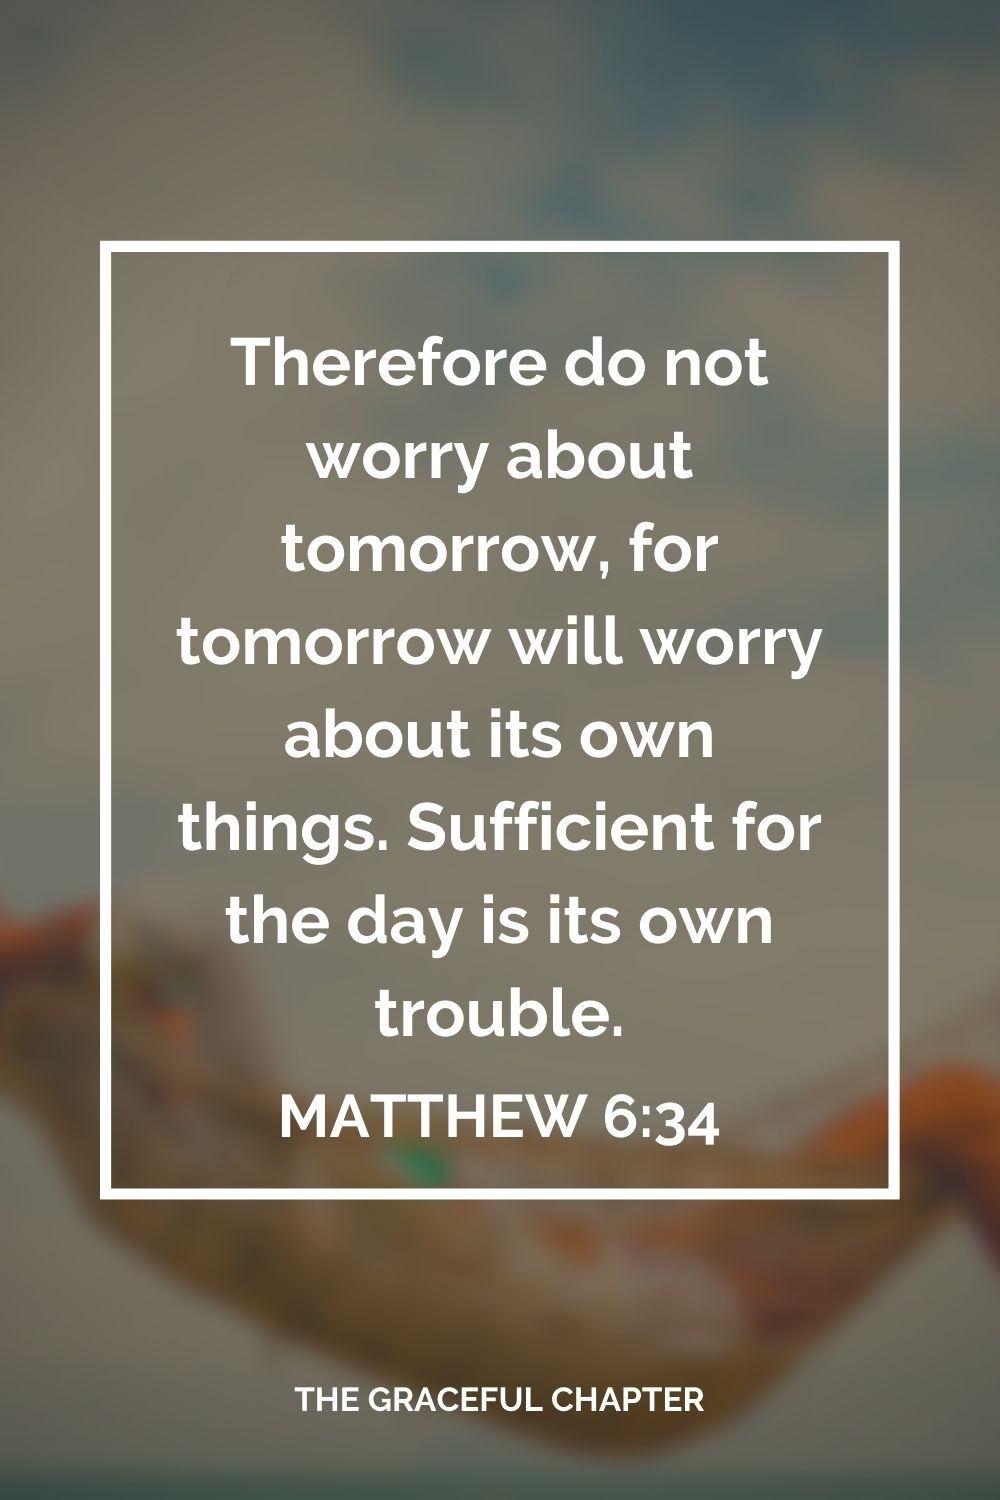 Therefore do not worry about tomorrow, for tomorrow will worry about its own things. Sufficient for the day is its own trouble. Matthew 6:34